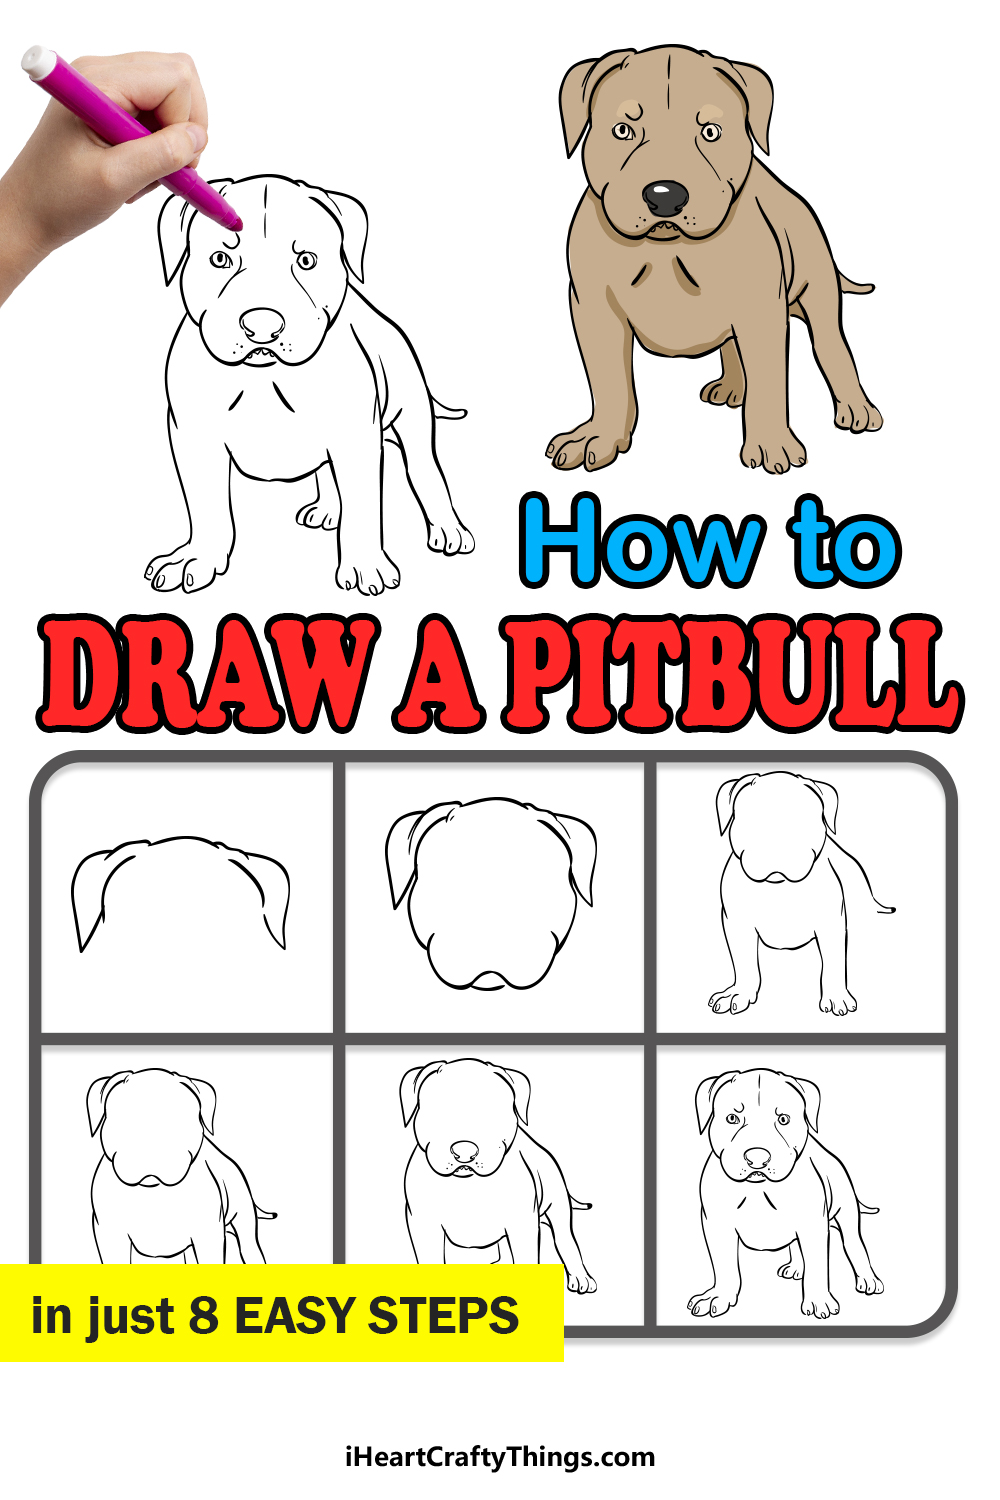 how to draw a pitbull in 8 easy steps